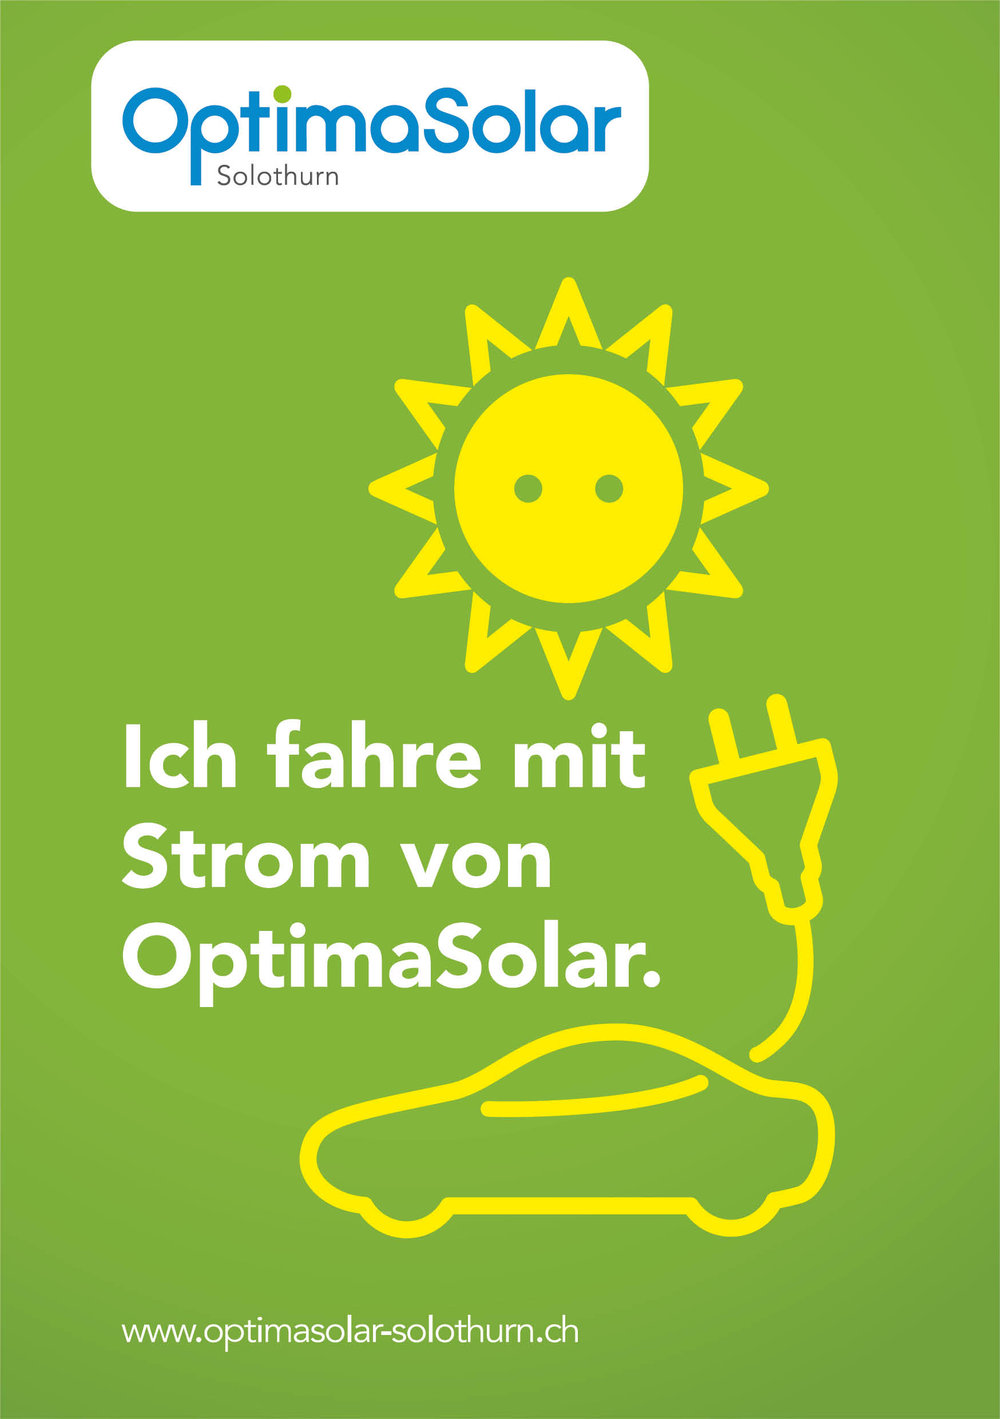 Illustration für OptimaSolar